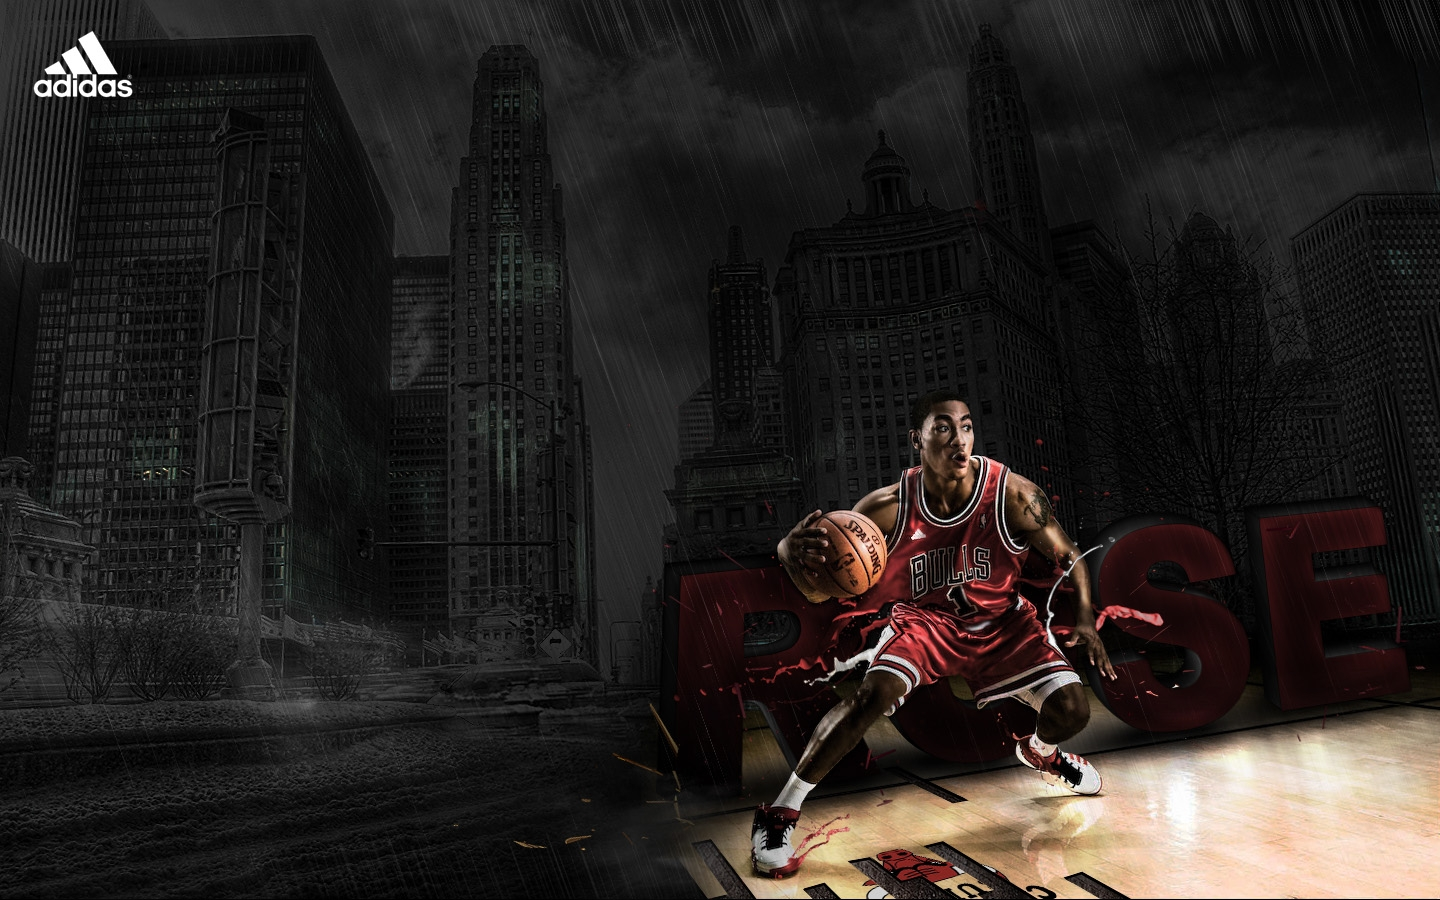 Derrick Rose Chicago Bulls Wallpaper Full HD ImageBankbiz 1440x900